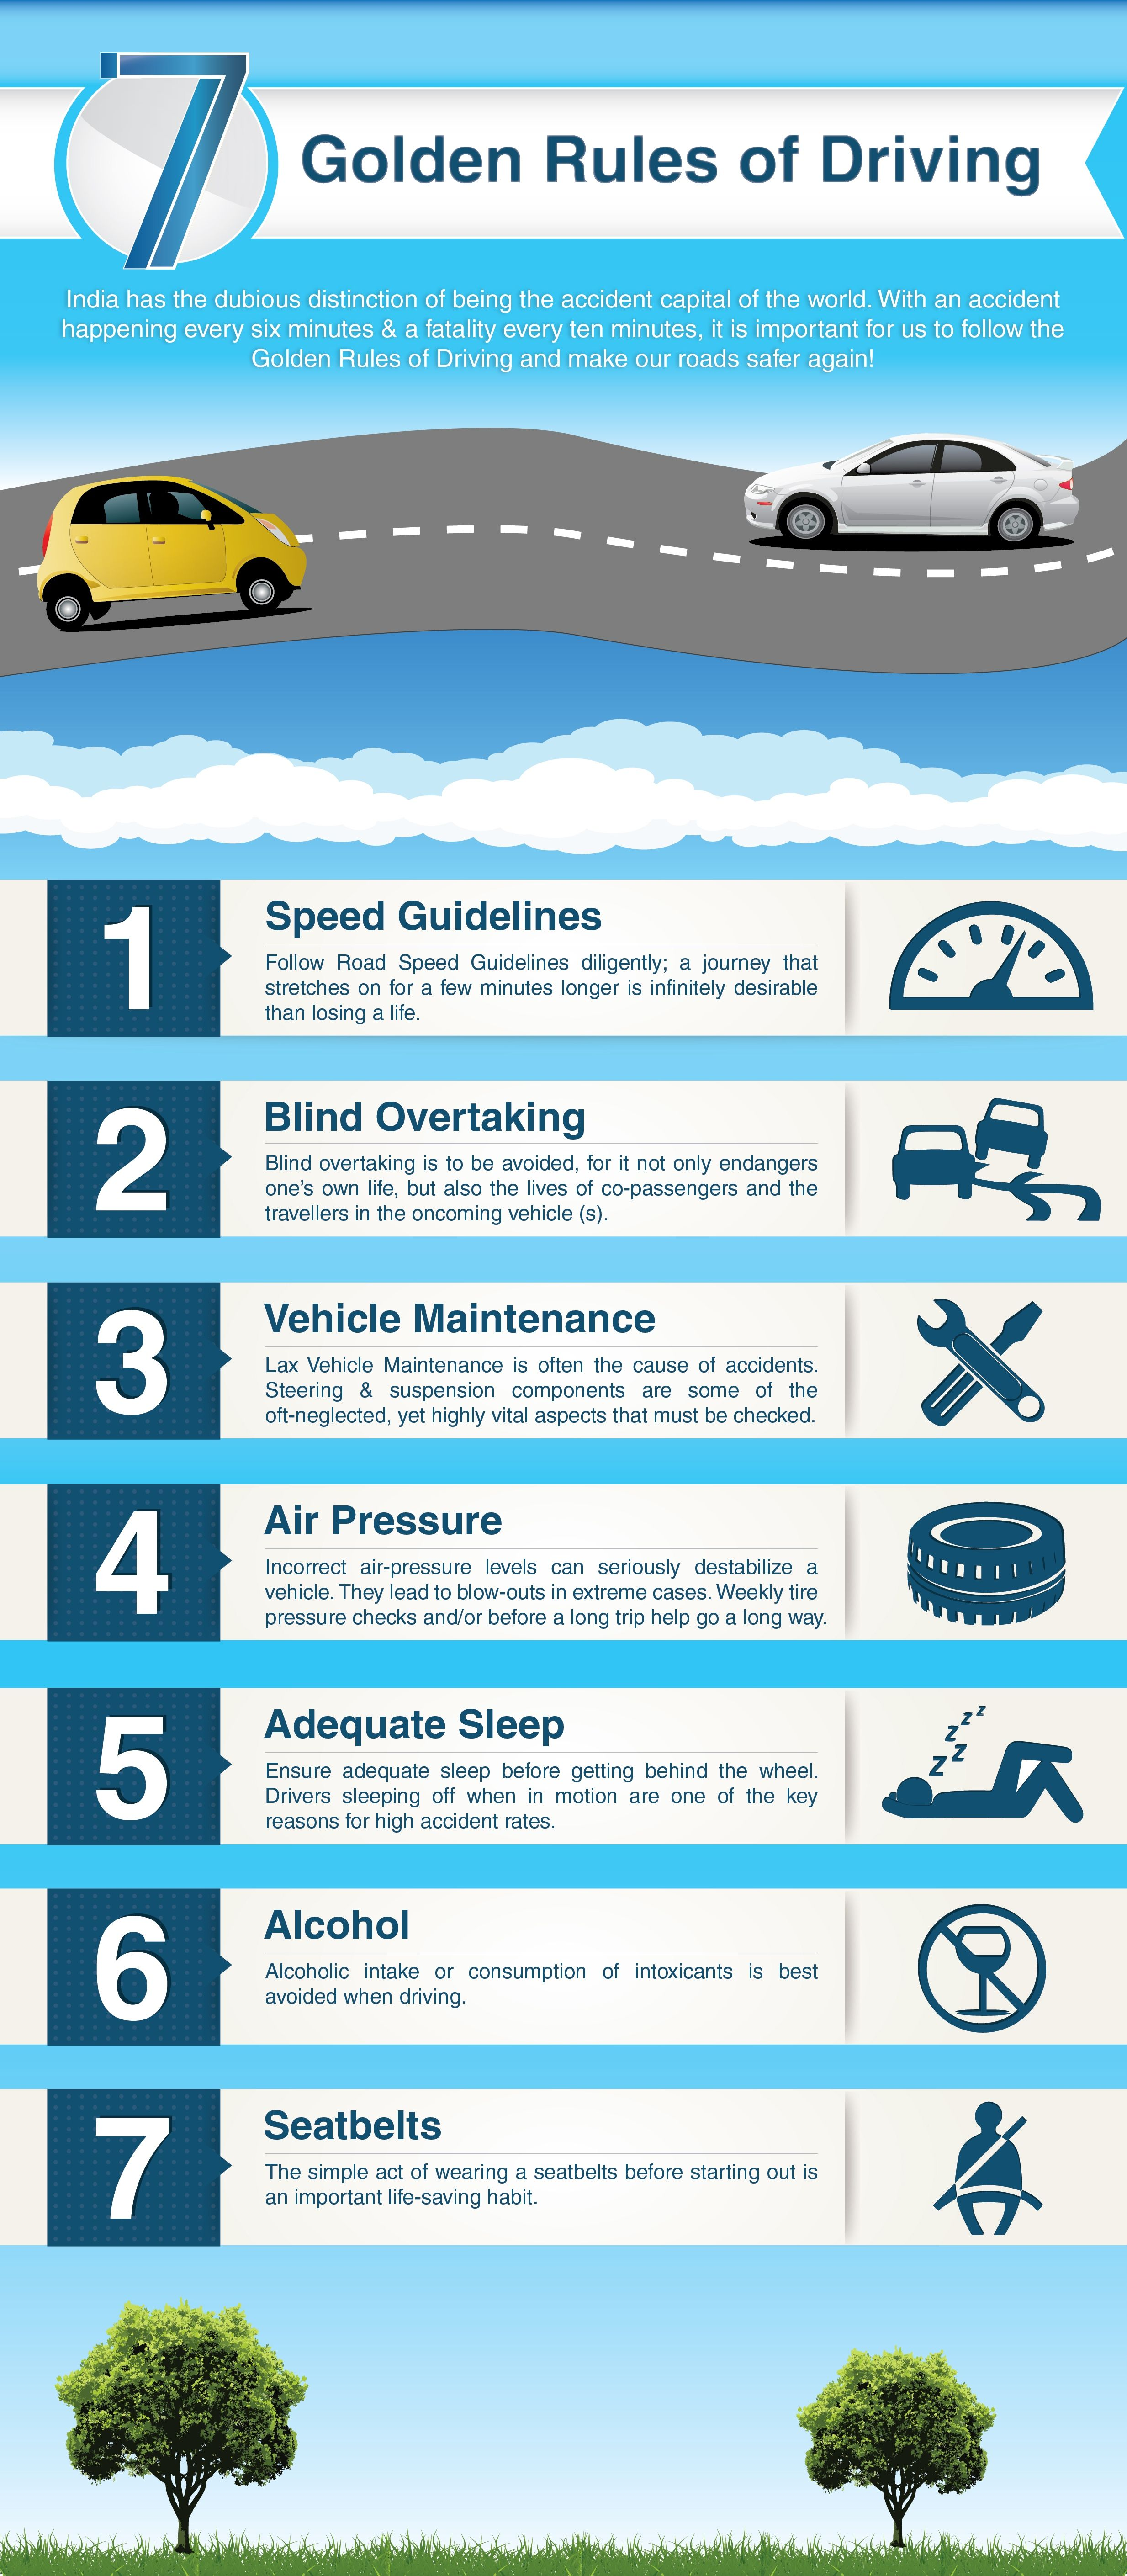 7 Most Important Must Follow Rules And Guidelines For Driving